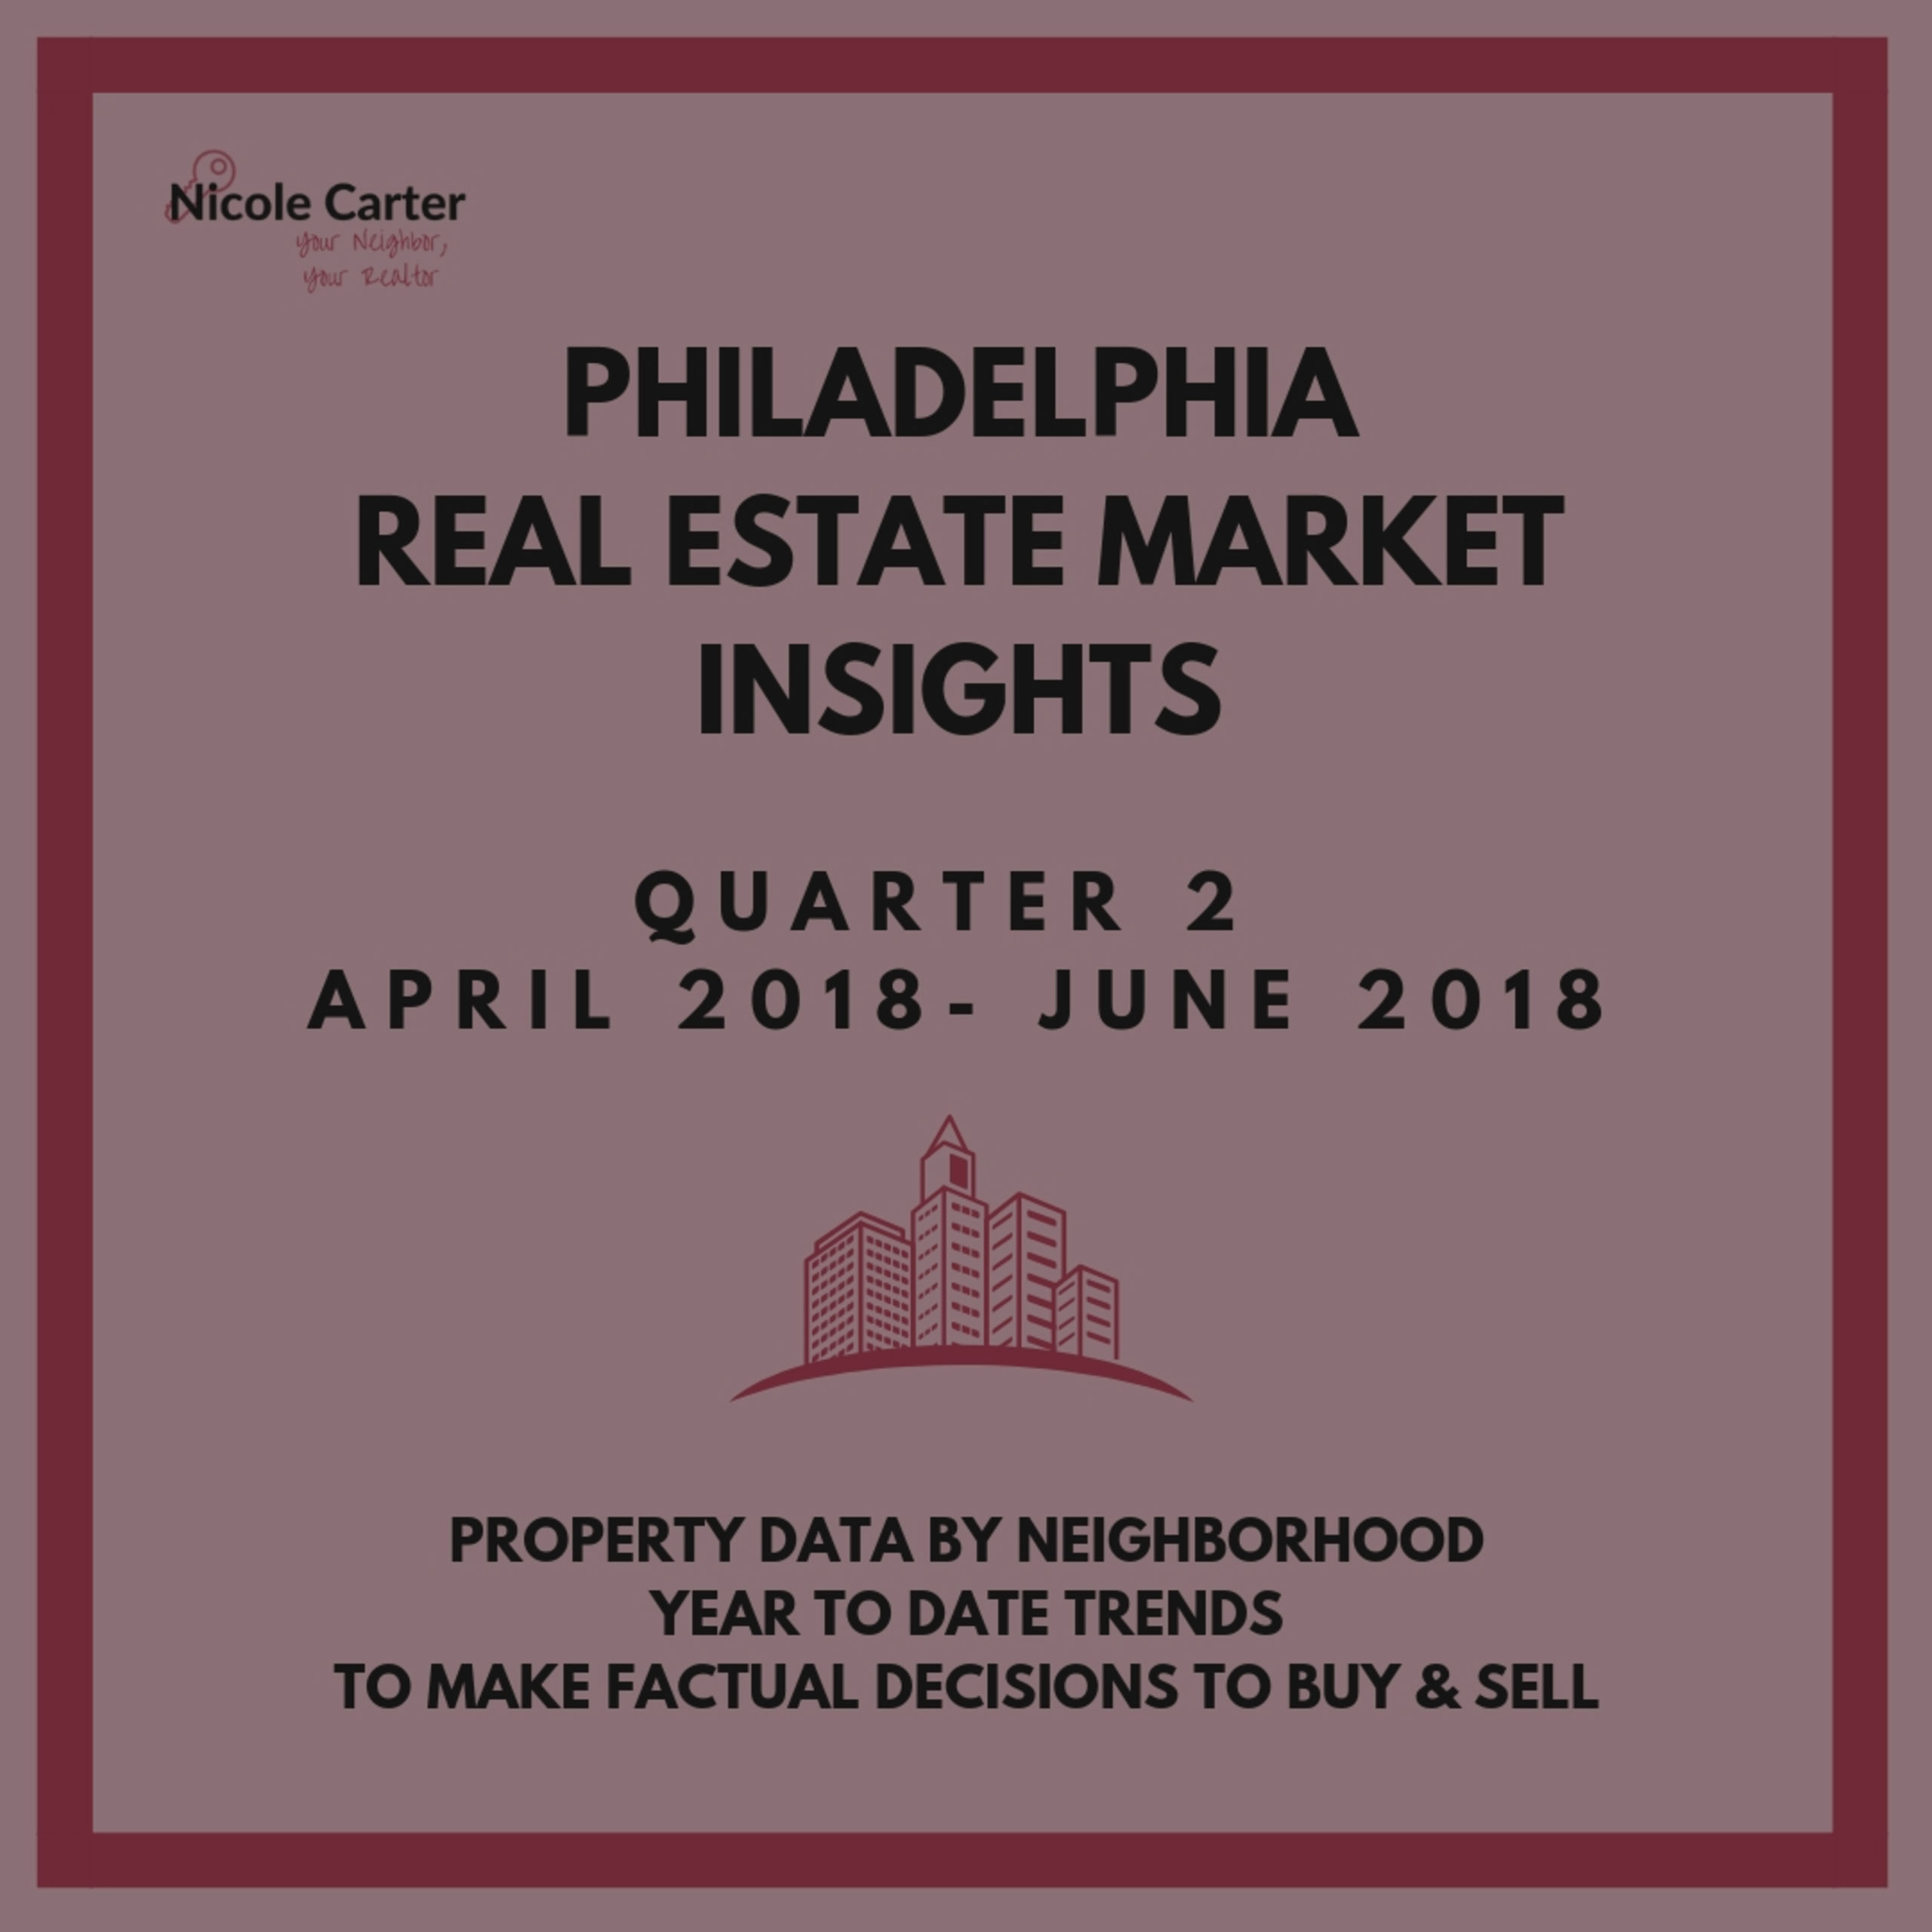 SECOND QUARTER 2018 TREND REPORT: PHILADELPHIA BUYING AND SELLING